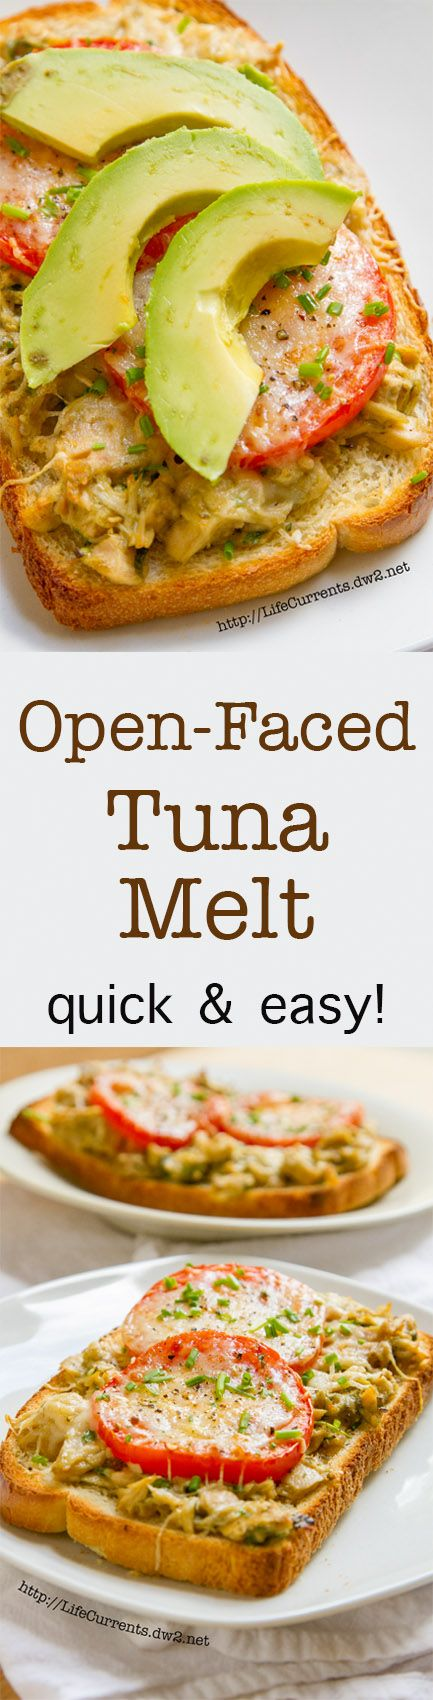 ... Melt Recipe on Pinterest | Tuna sandwich recipes, Grilled sandwich and